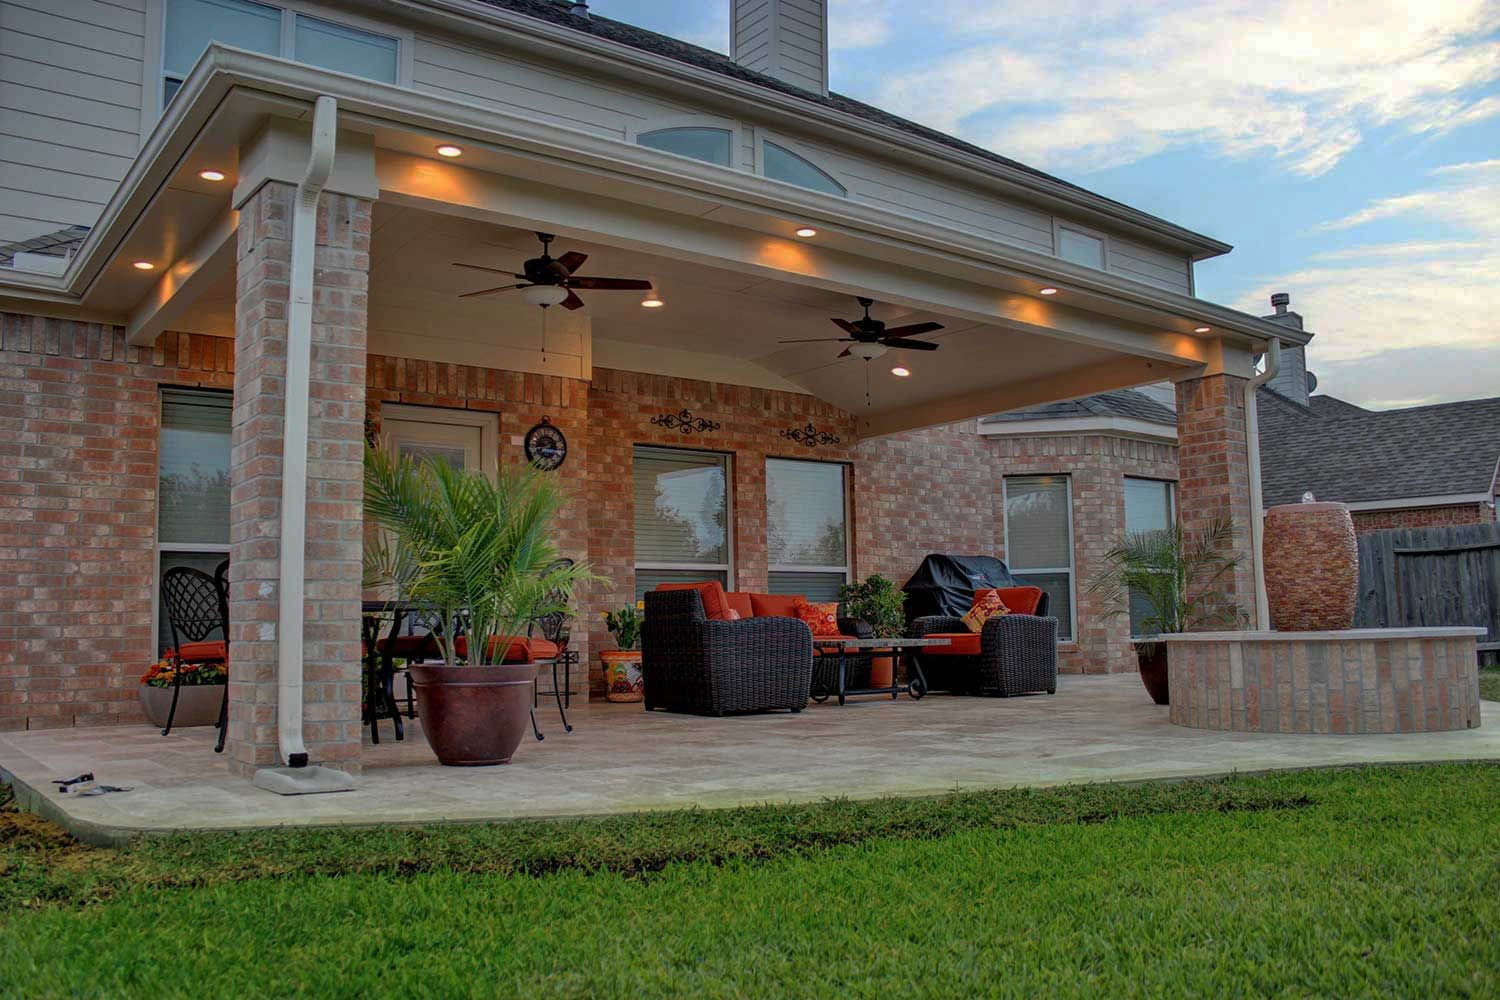 Stylish Ways to Decorate l shaped covered patio ideas on ... on L Shaped Patio Ideas id=20558